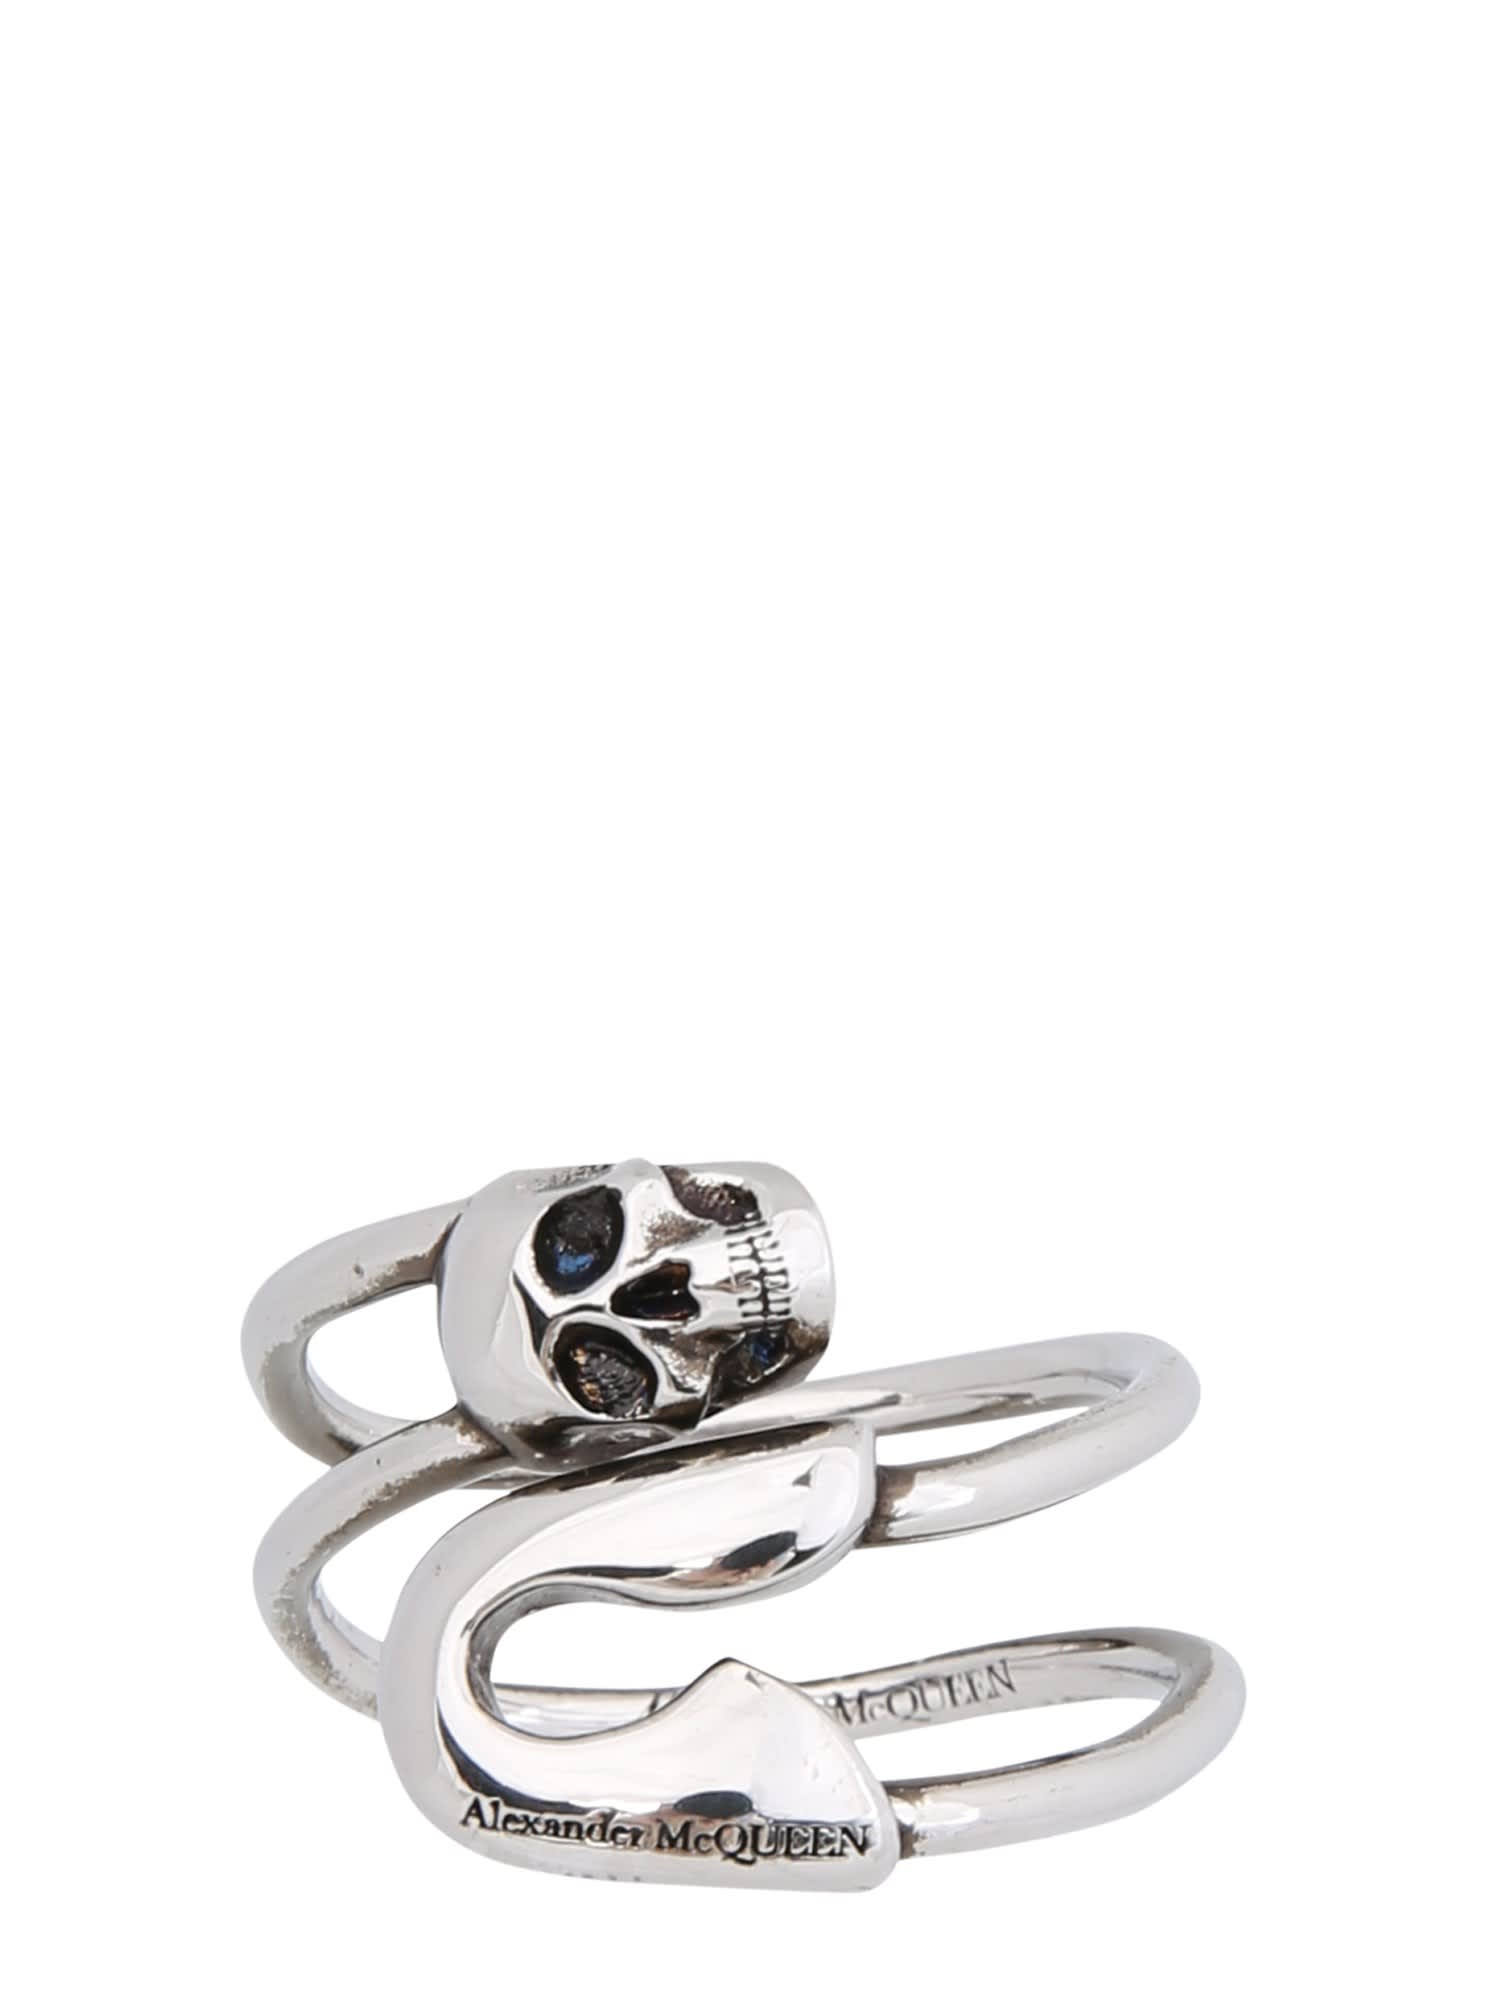 Alexander Mcqueen SAFETY PIN RING